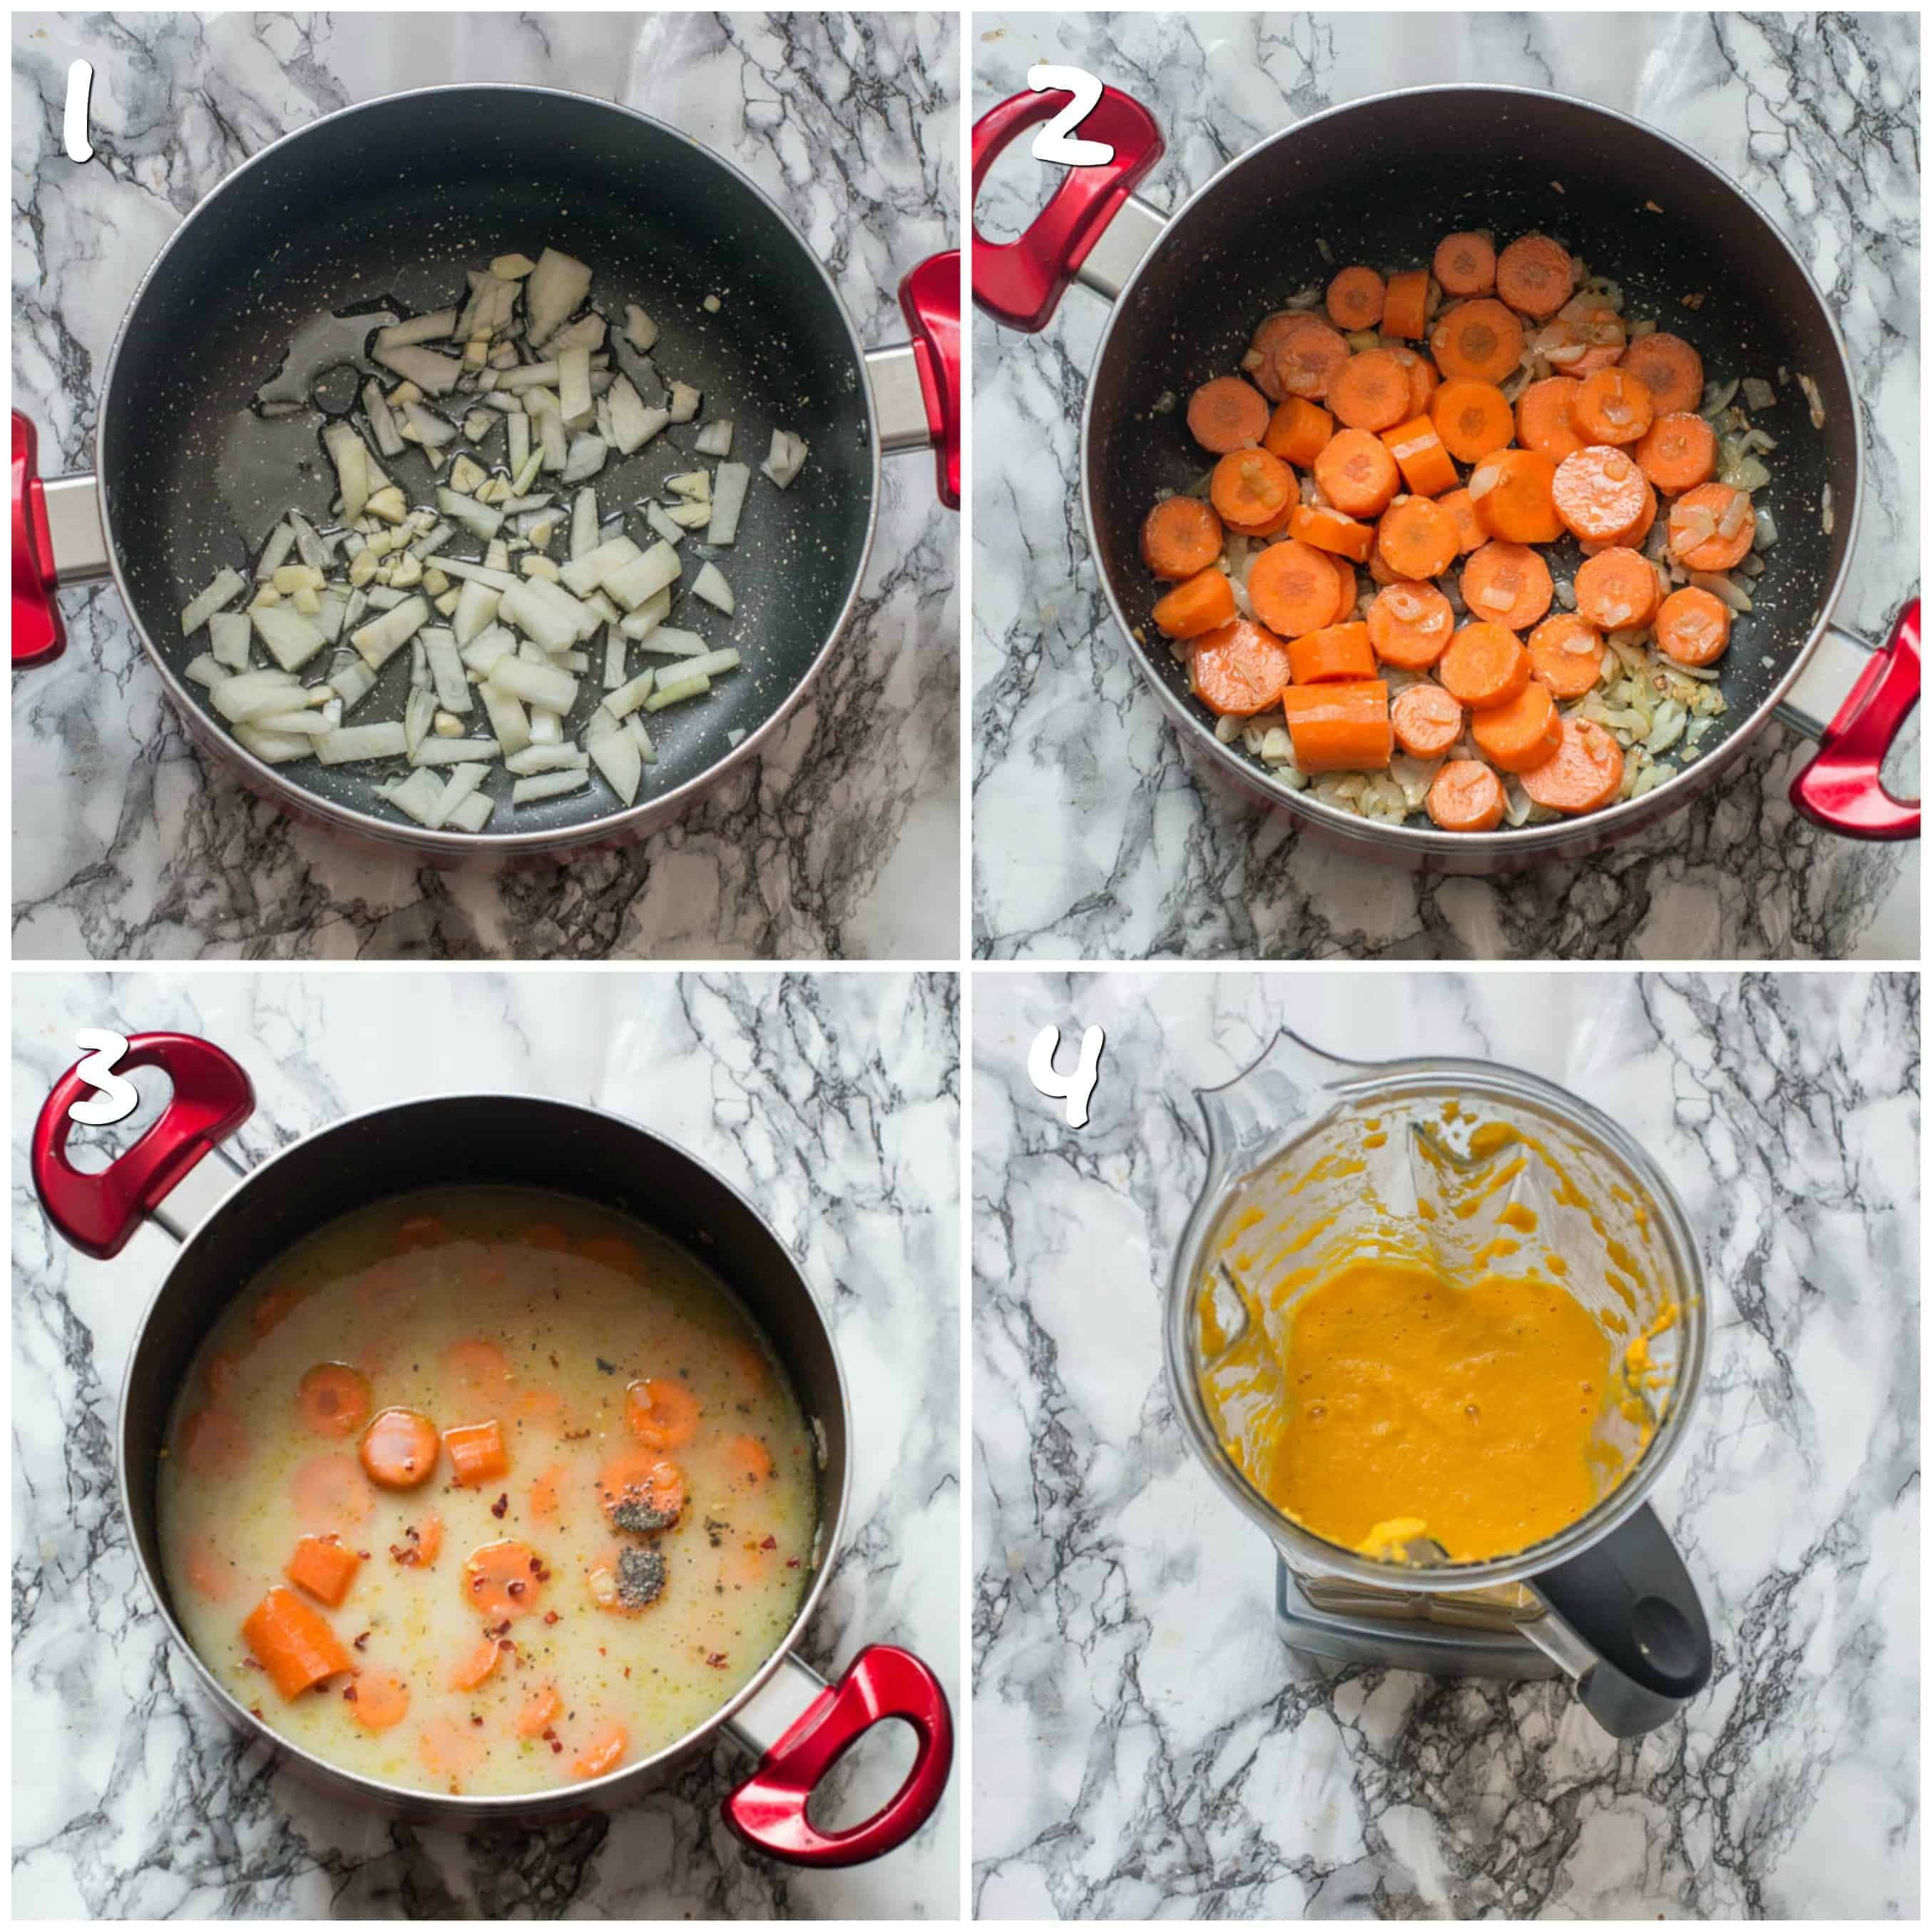 Steps 1-4 sauteing carrots, veg and pureeing soup